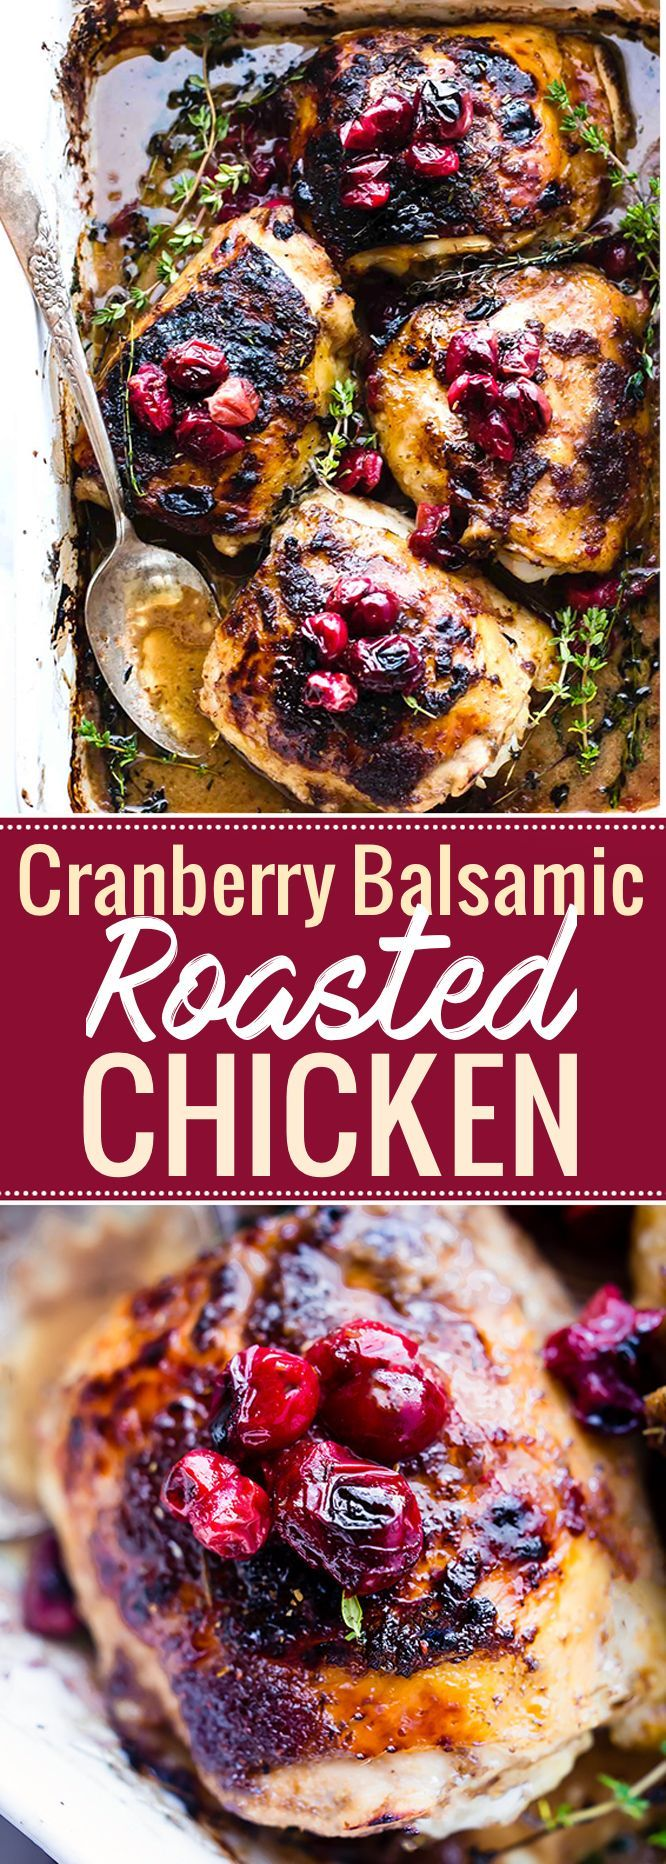 ONE pan Cranberry Balsamic Roasted Chicken! This Paleo Cranberry Balsamic Roasted Chicken makes a healthy one pan dinner or holiday dish. This Paleo Balsamic Roasted Chicken is a simple yet healthy dinner. A sweet tangy marinade makes this roasted chicken extra juicy and extra crispy. One of our go to meals for meal prep too! www.cottercrunch.com @cottercrunch.com